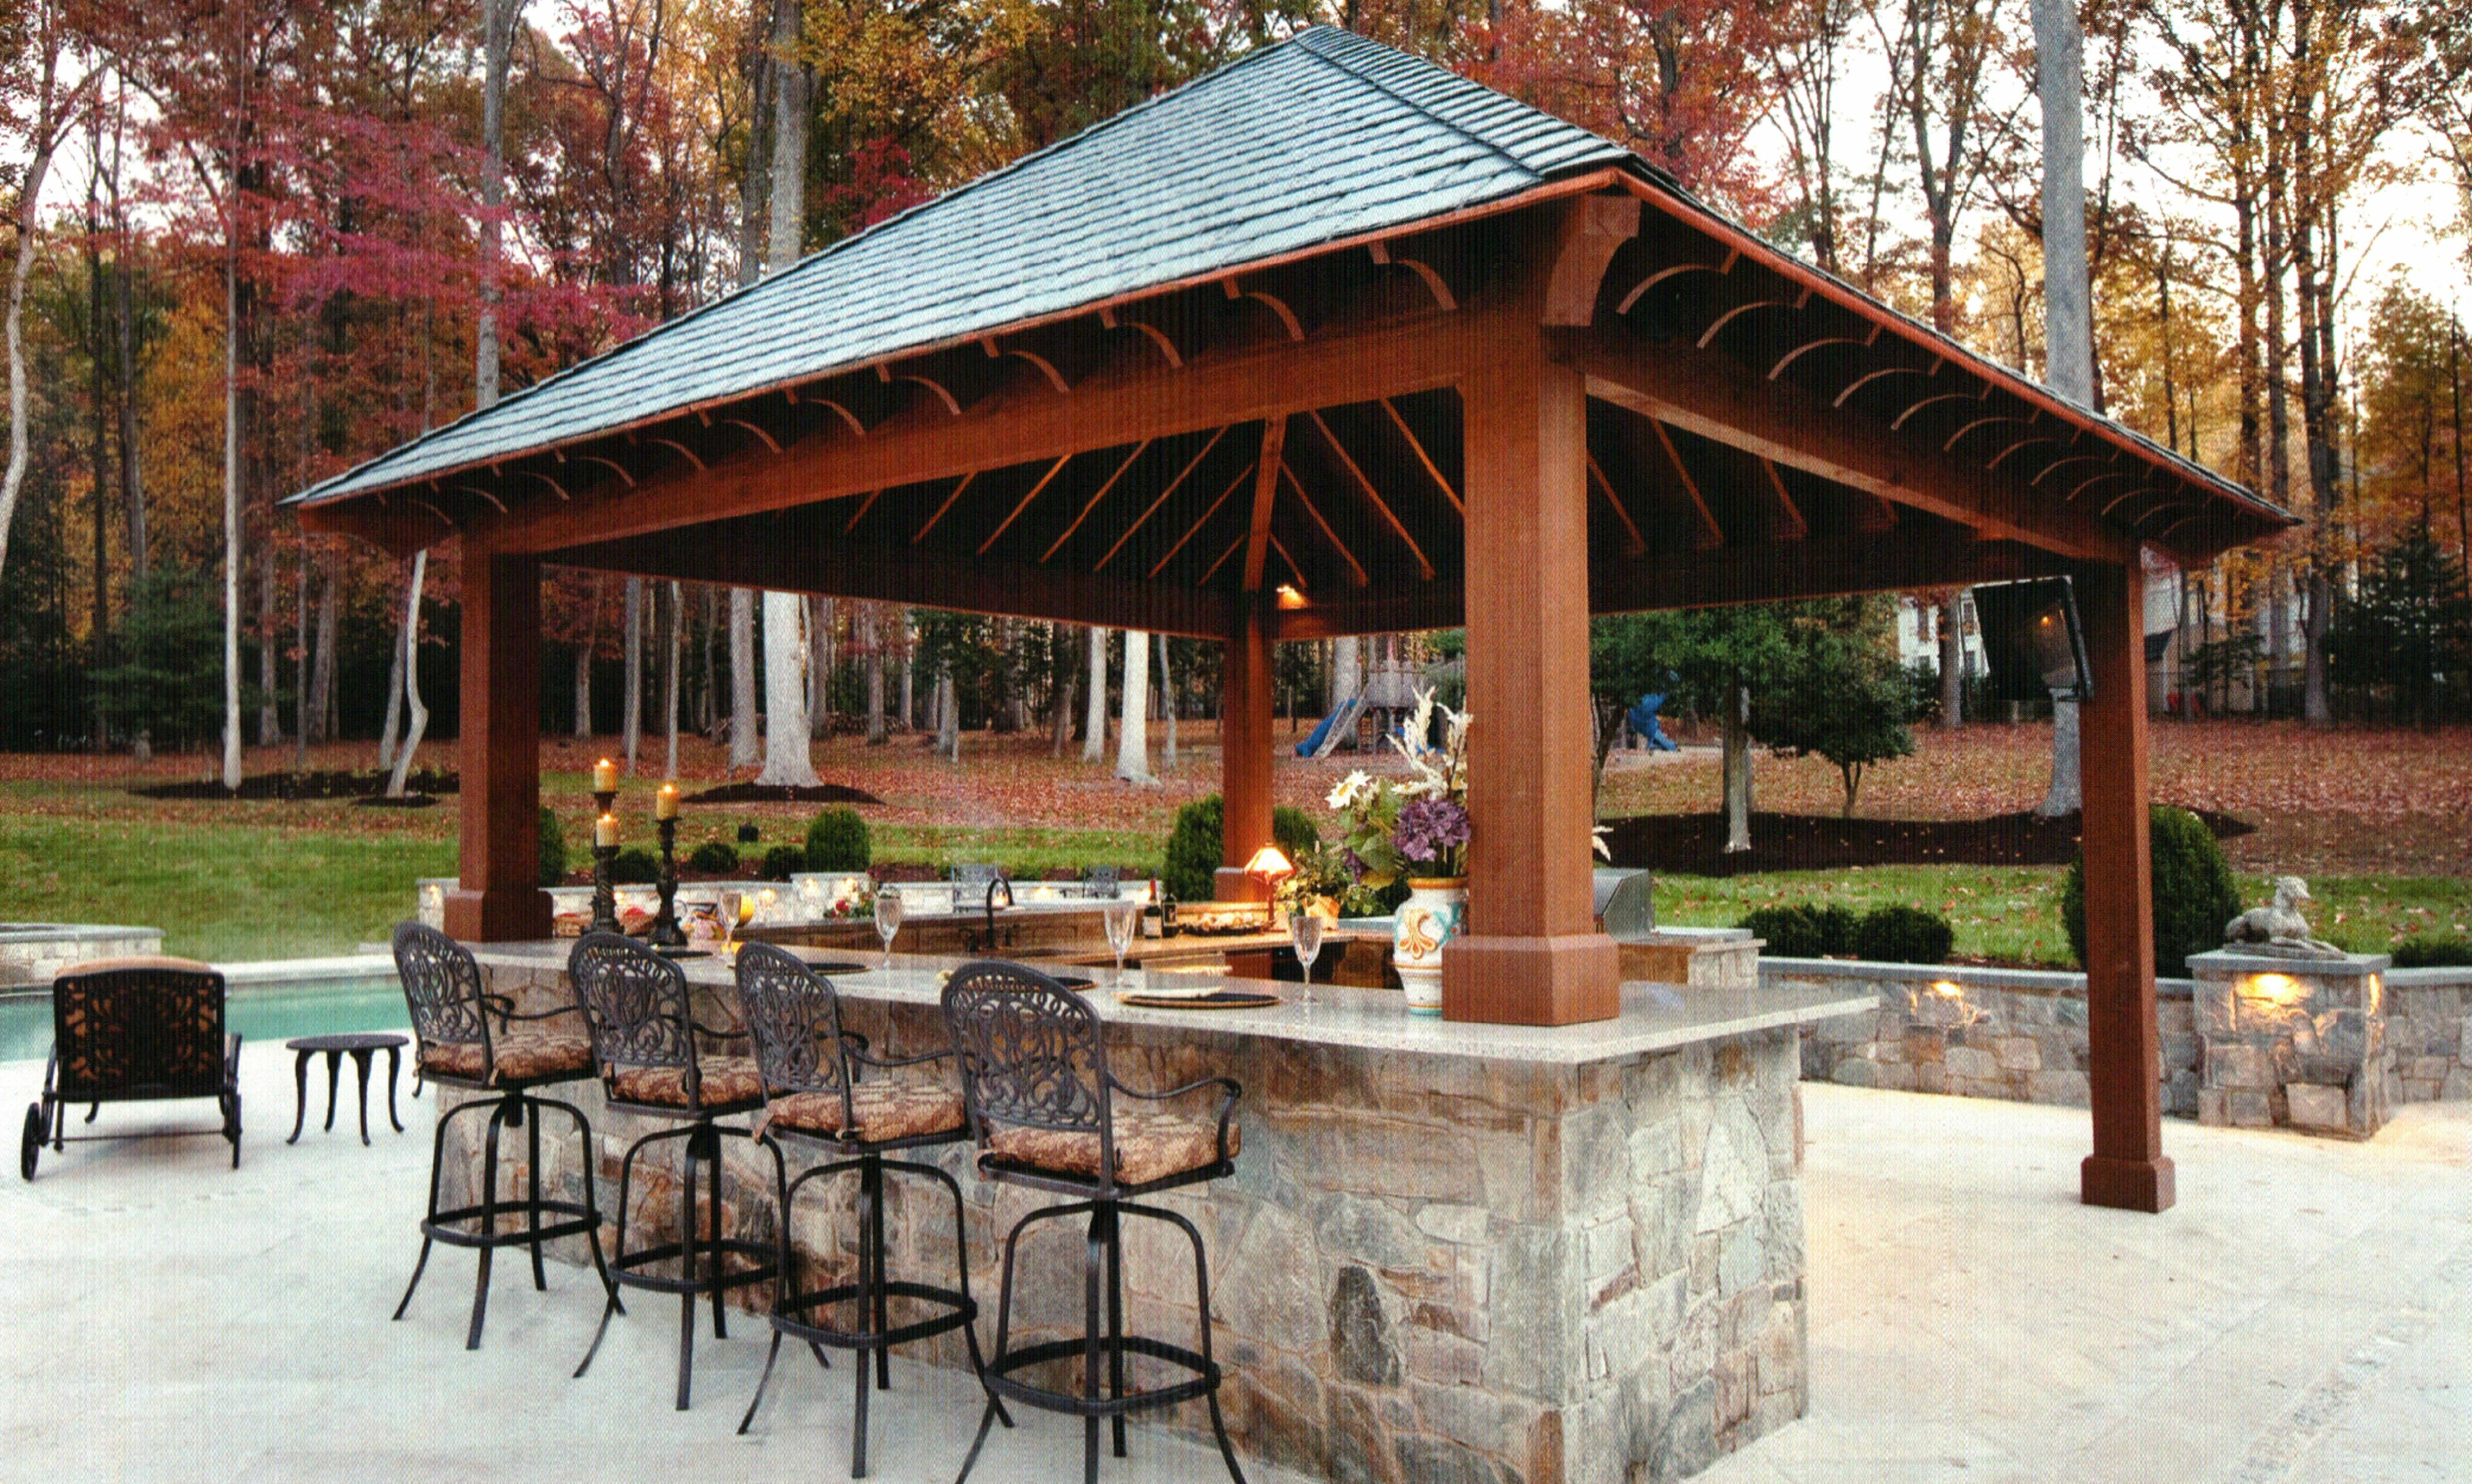 Outdoor Kitchen With Bar Design Tool Pool Pergola Plans Deck For Outdoor Kitchen Beverage Center Good Outdoor Kitchen Beverage Center Backyard Bar Outdoor Kitchen Bars Outdoor Backyard